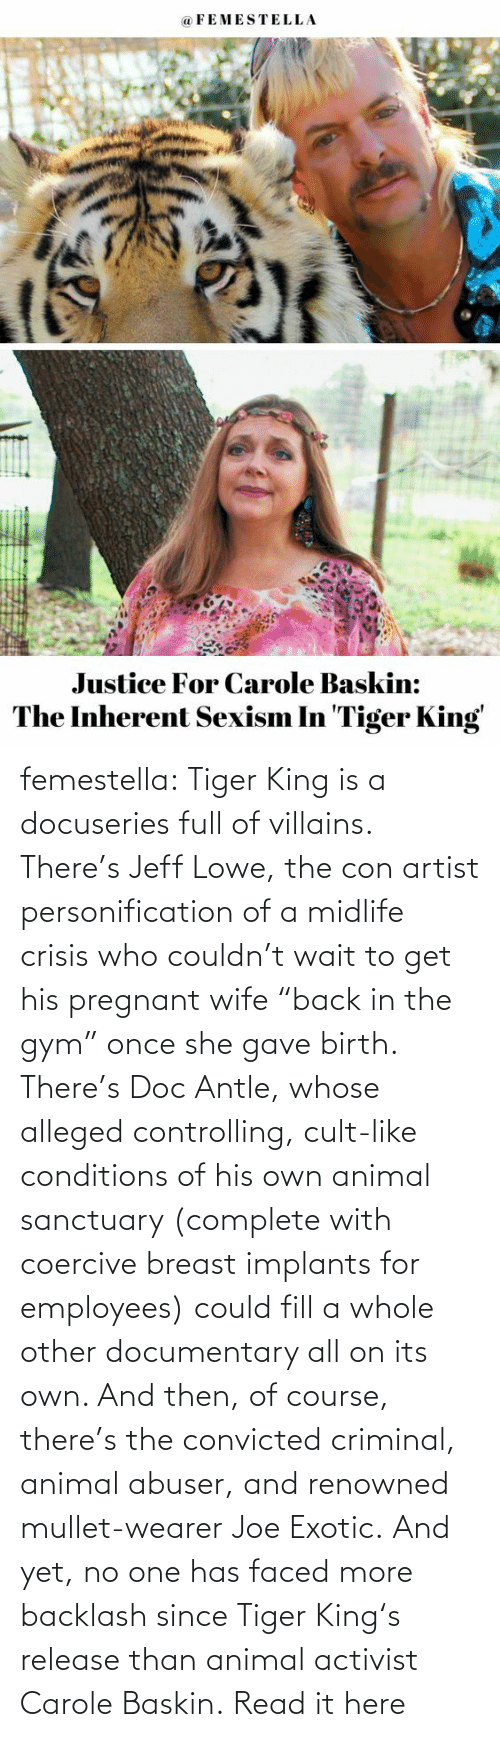 "Convicted: femestella: Tiger King is a docuseries full of villains. There's Jeff Lowe, the con artist personification of a midlife crisis who couldn't wait to get his pregnant wife ""back in the gym"" once she gave birth. There's Doc Antle, whose alleged controlling, cult-like conditions of his own animal sanctuary (complete with coercive breast implants for employees) could fill a whole other documentary all on its own. And then, of course, there's the convicted criminal, animal abuser, and renowned mullet-wearer Joe Exotic. And yet, no one has faced more backlash since Tiger King's release than animal activist Carole Baskin. Read it here"